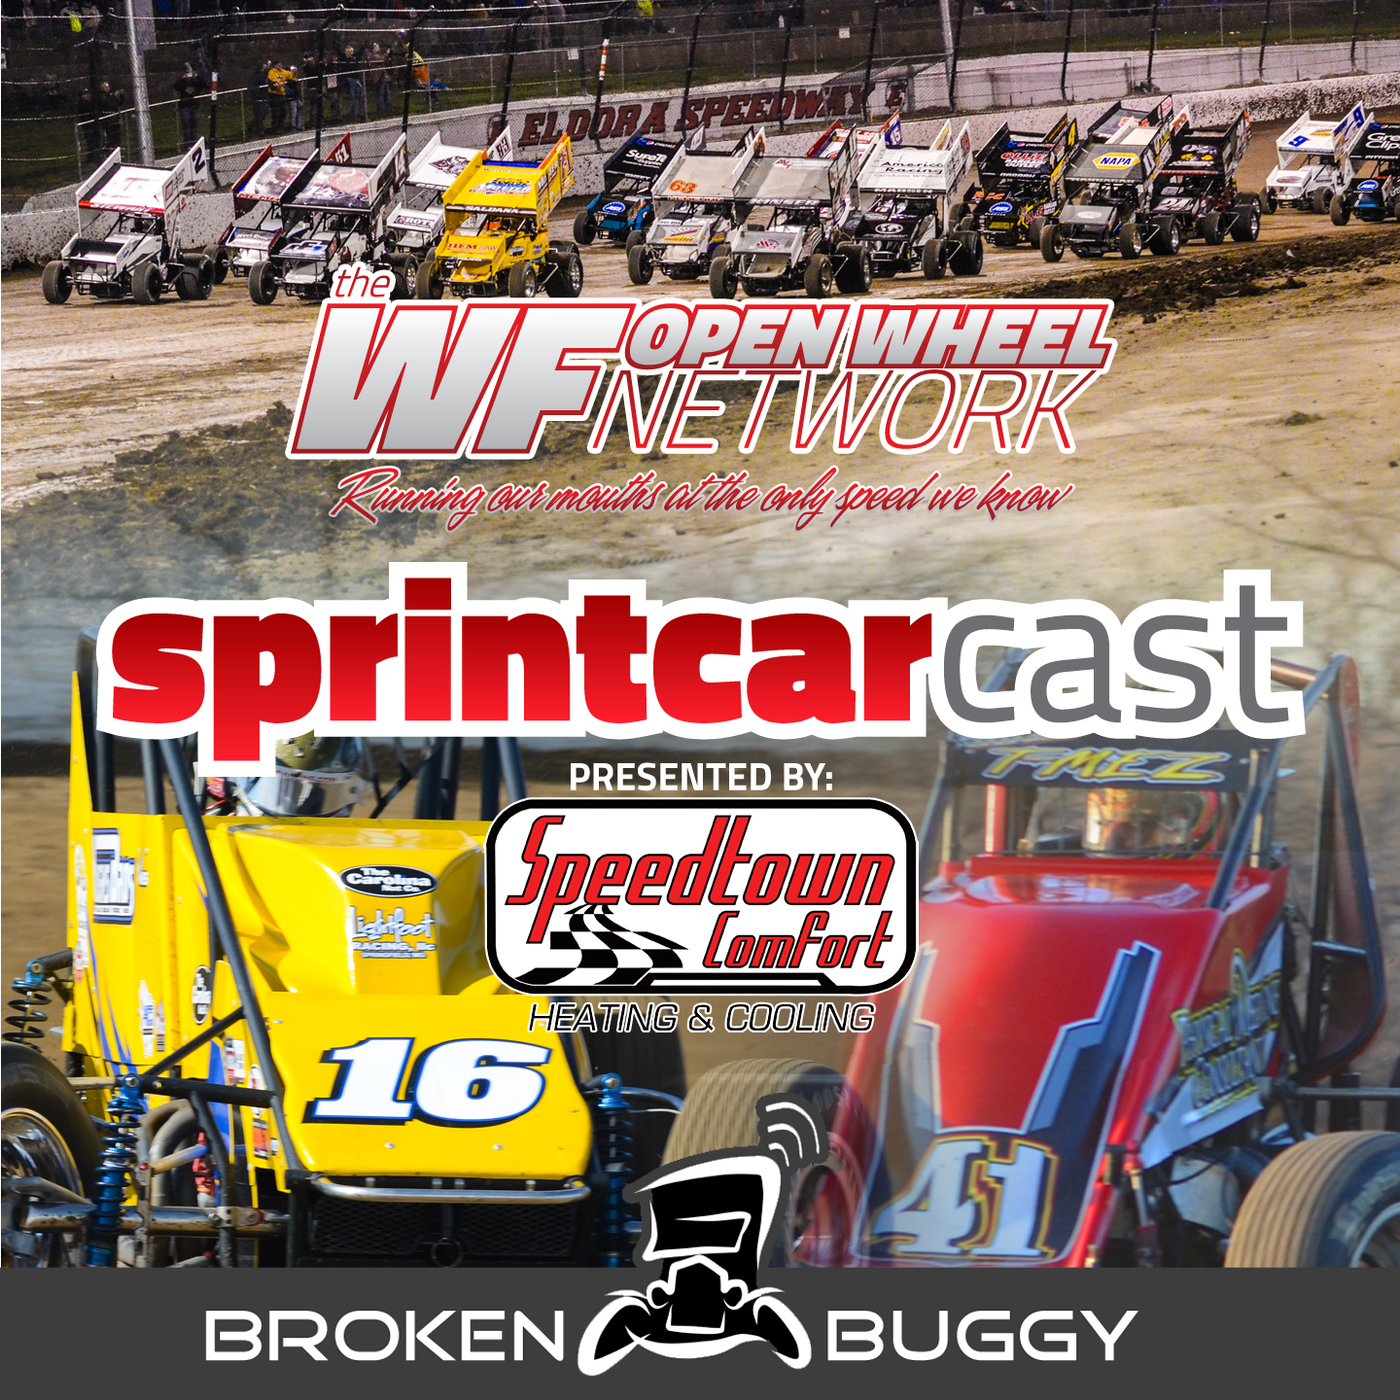 Sprint Carcast - WFOpenWheel's World of Outlaws, USAC & Midget Discussion